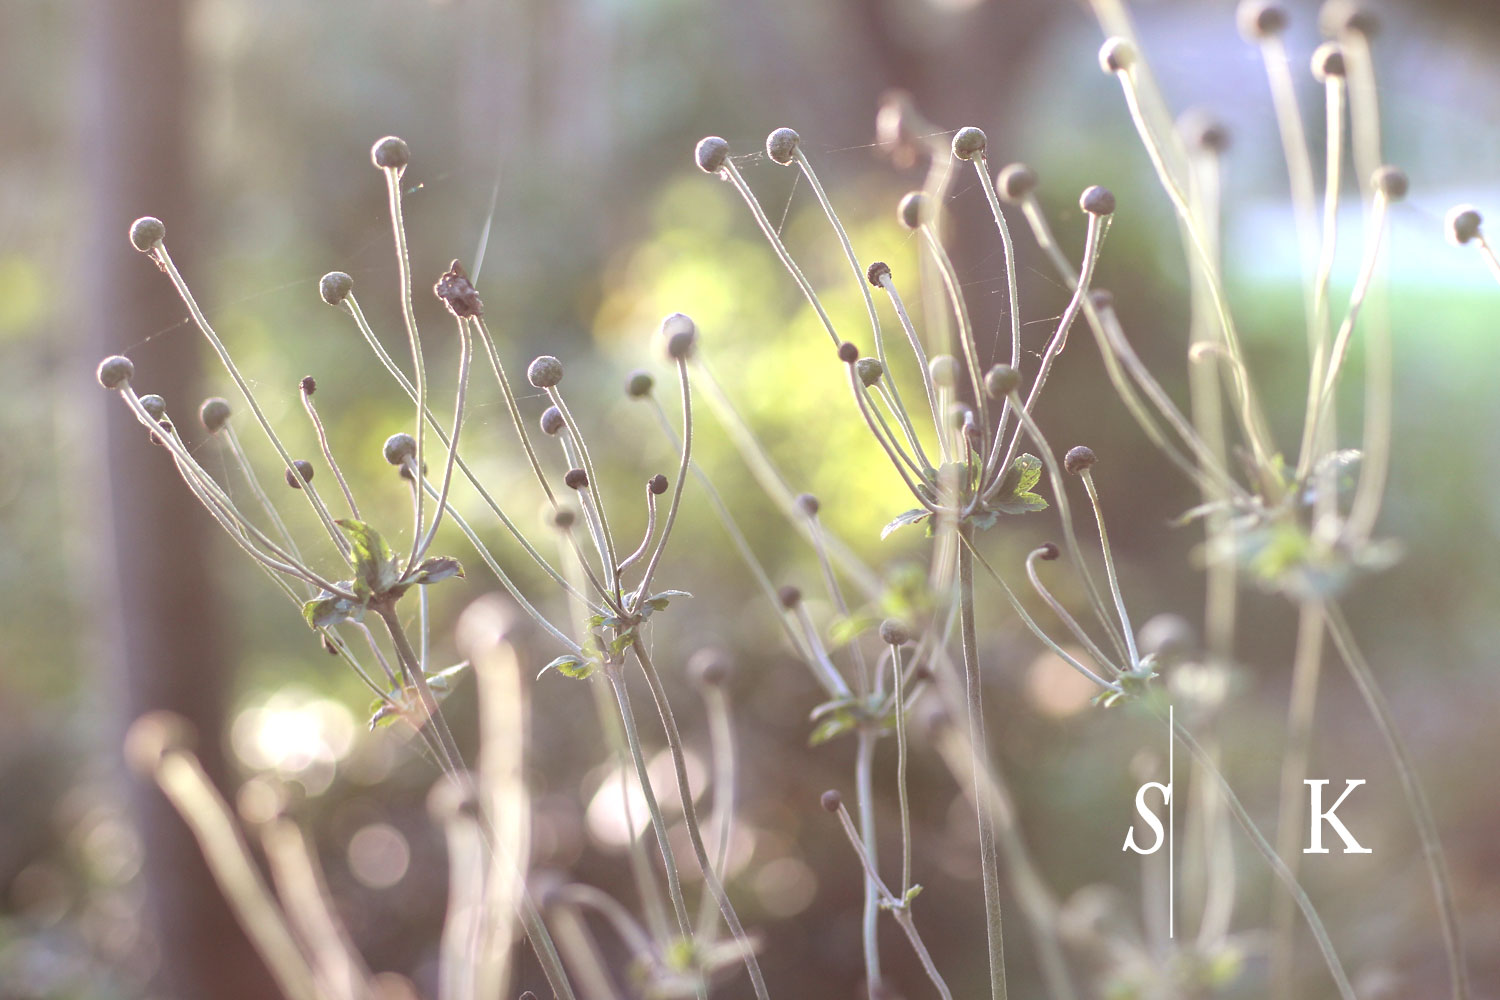 Cornwall Garden Design Seed Heads in Low Sun